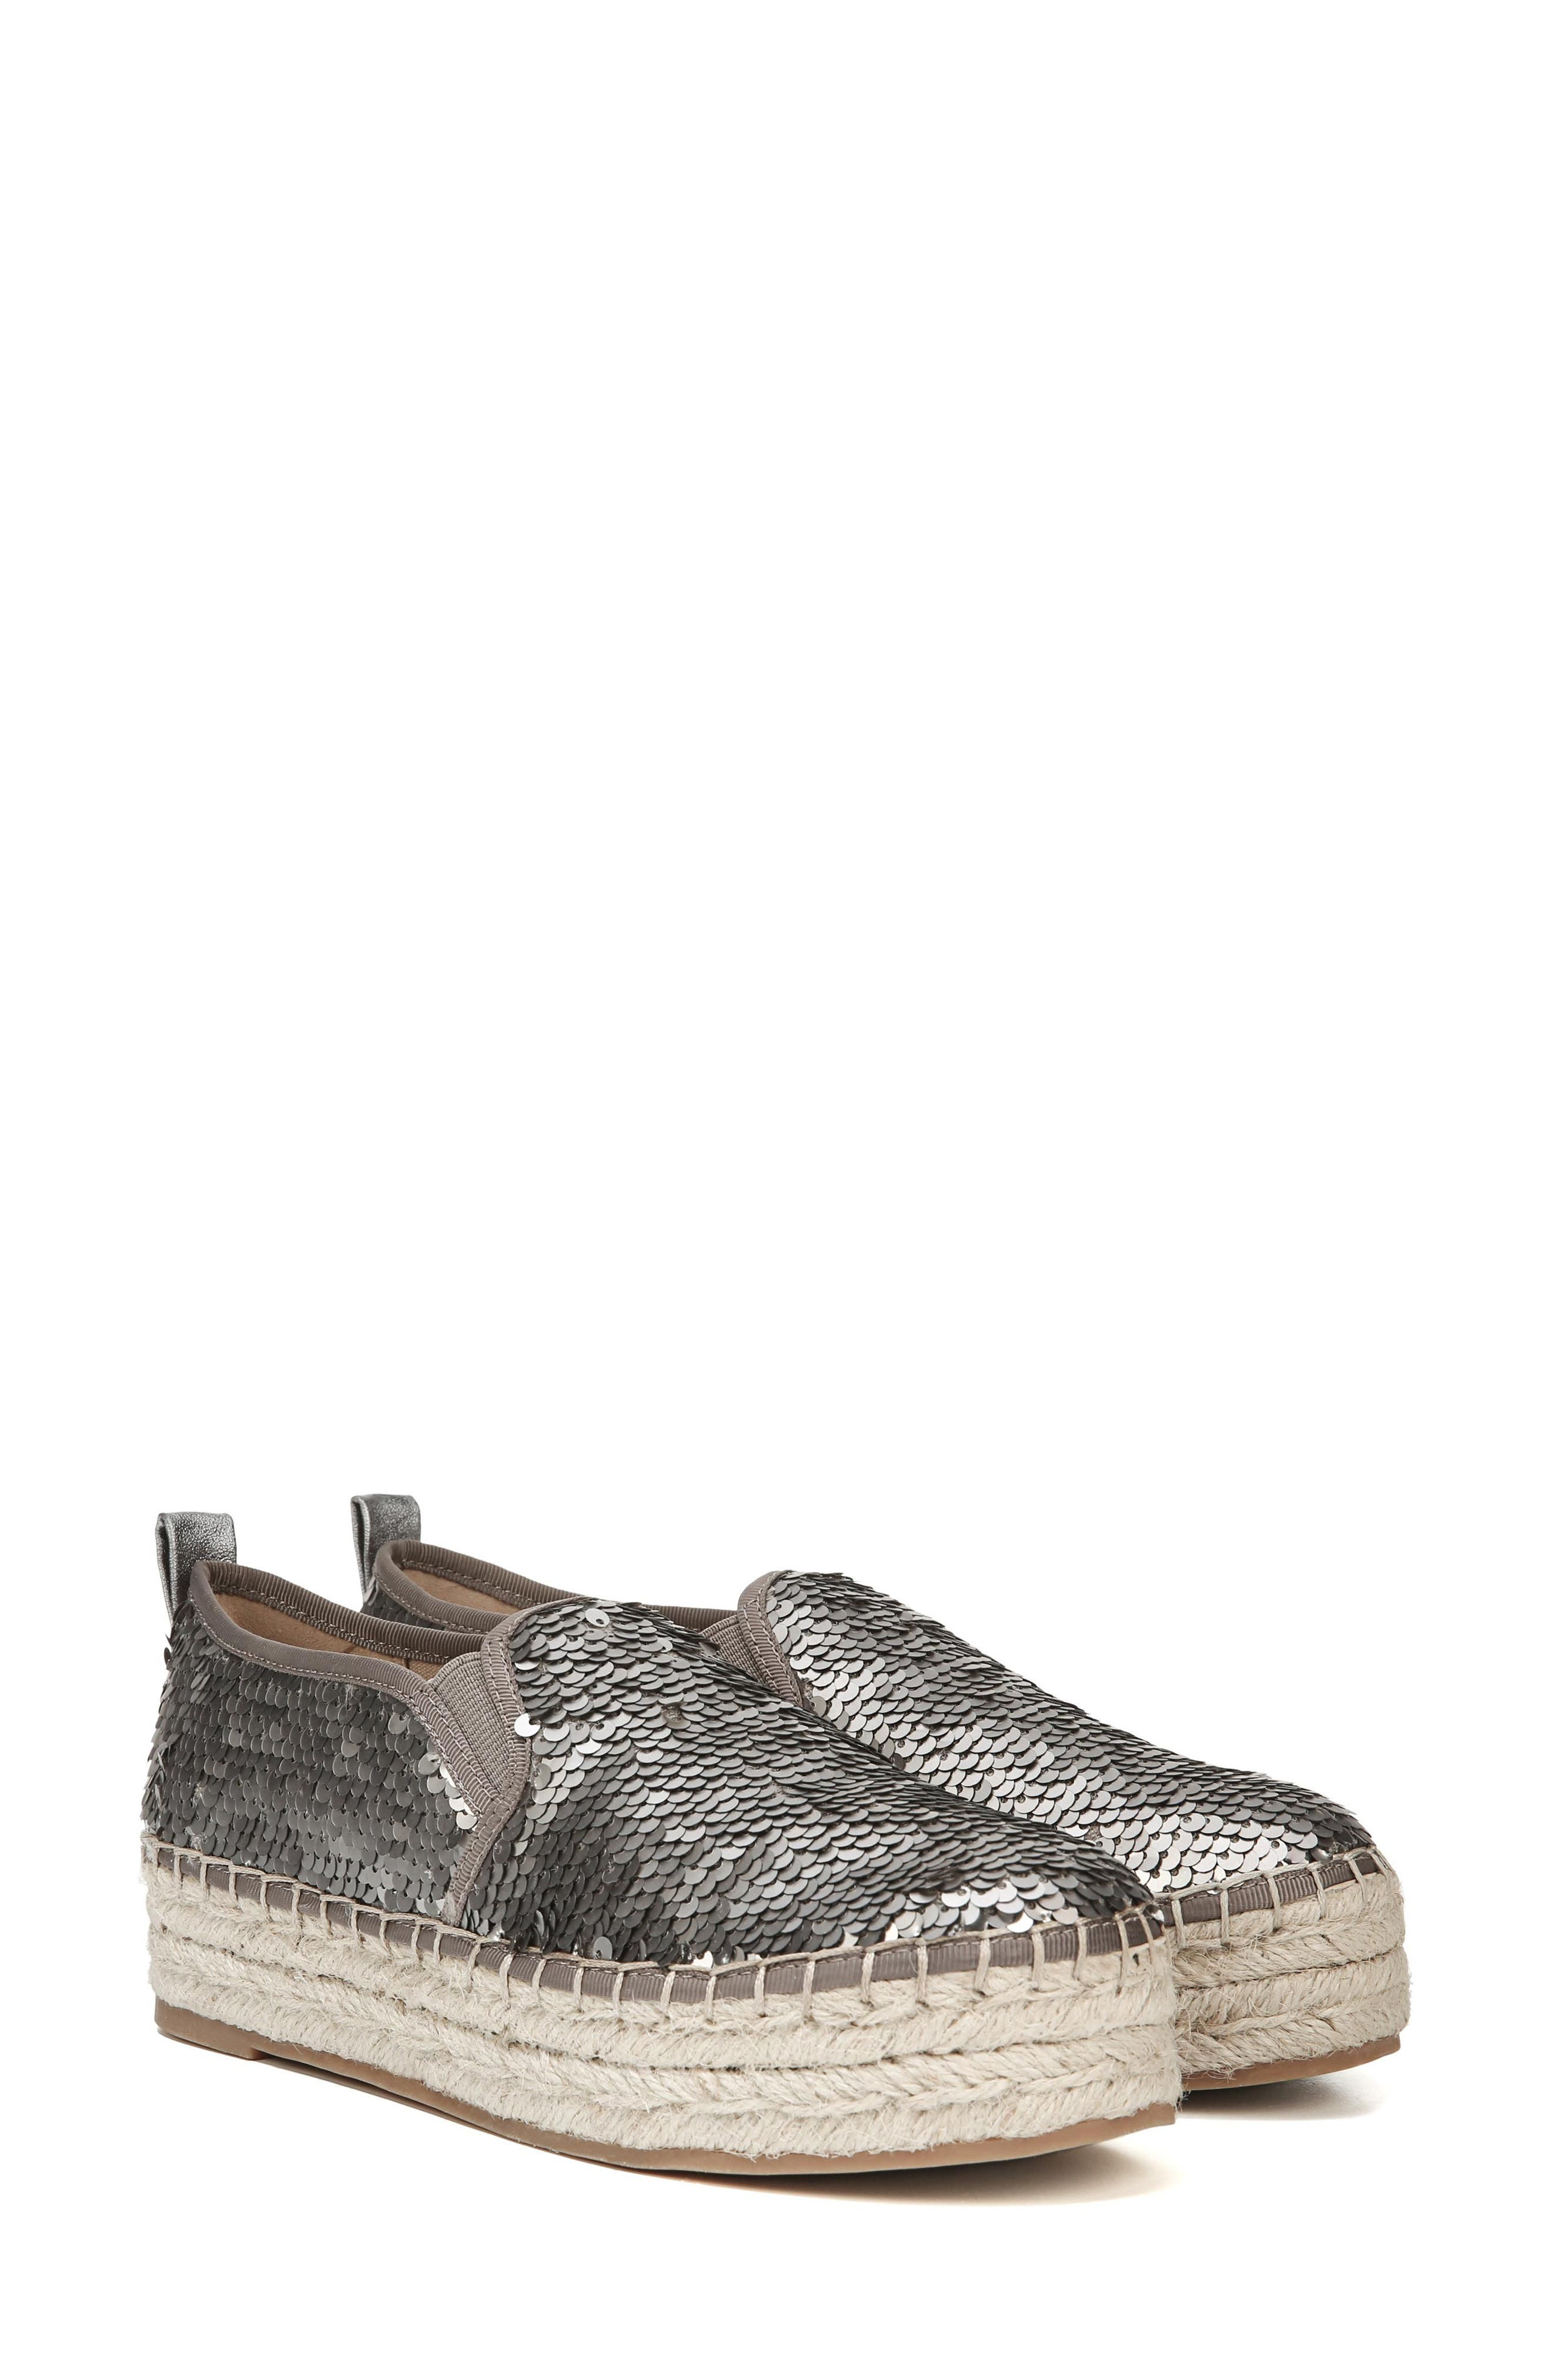 'Carrin' Espadrille Flat,                             Alternate thumbnail 7, color,                             PEWTER SEQUINS